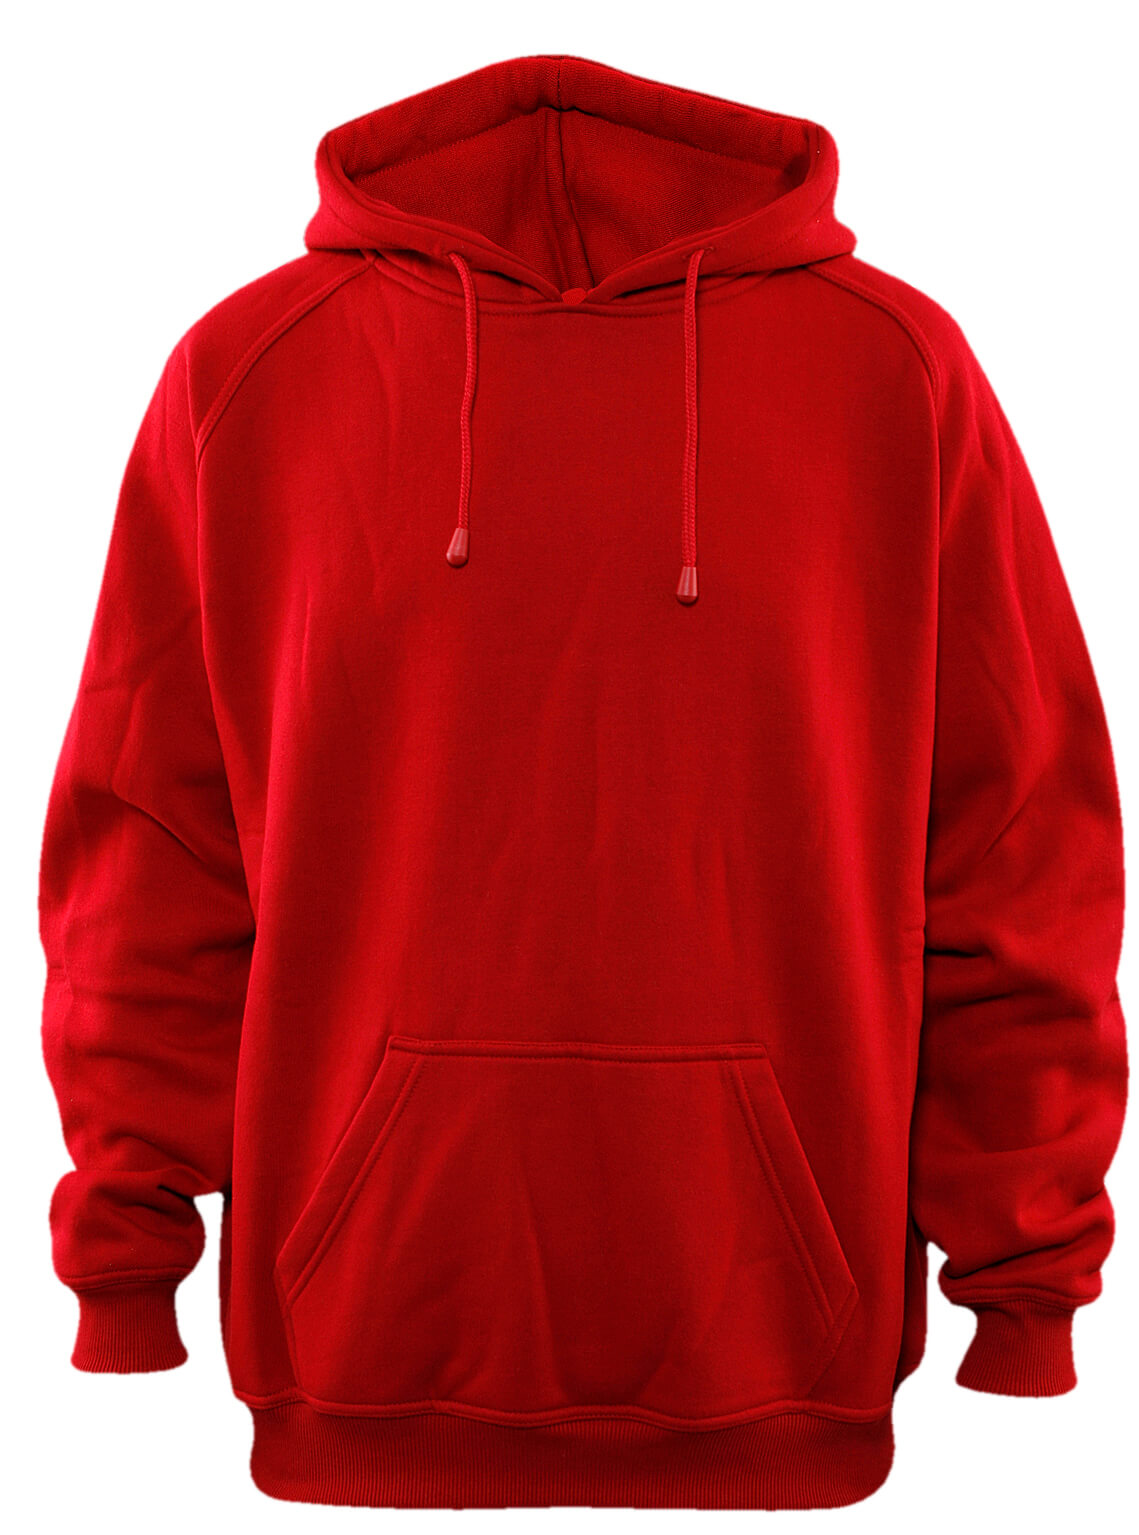 Cheap red hoodies